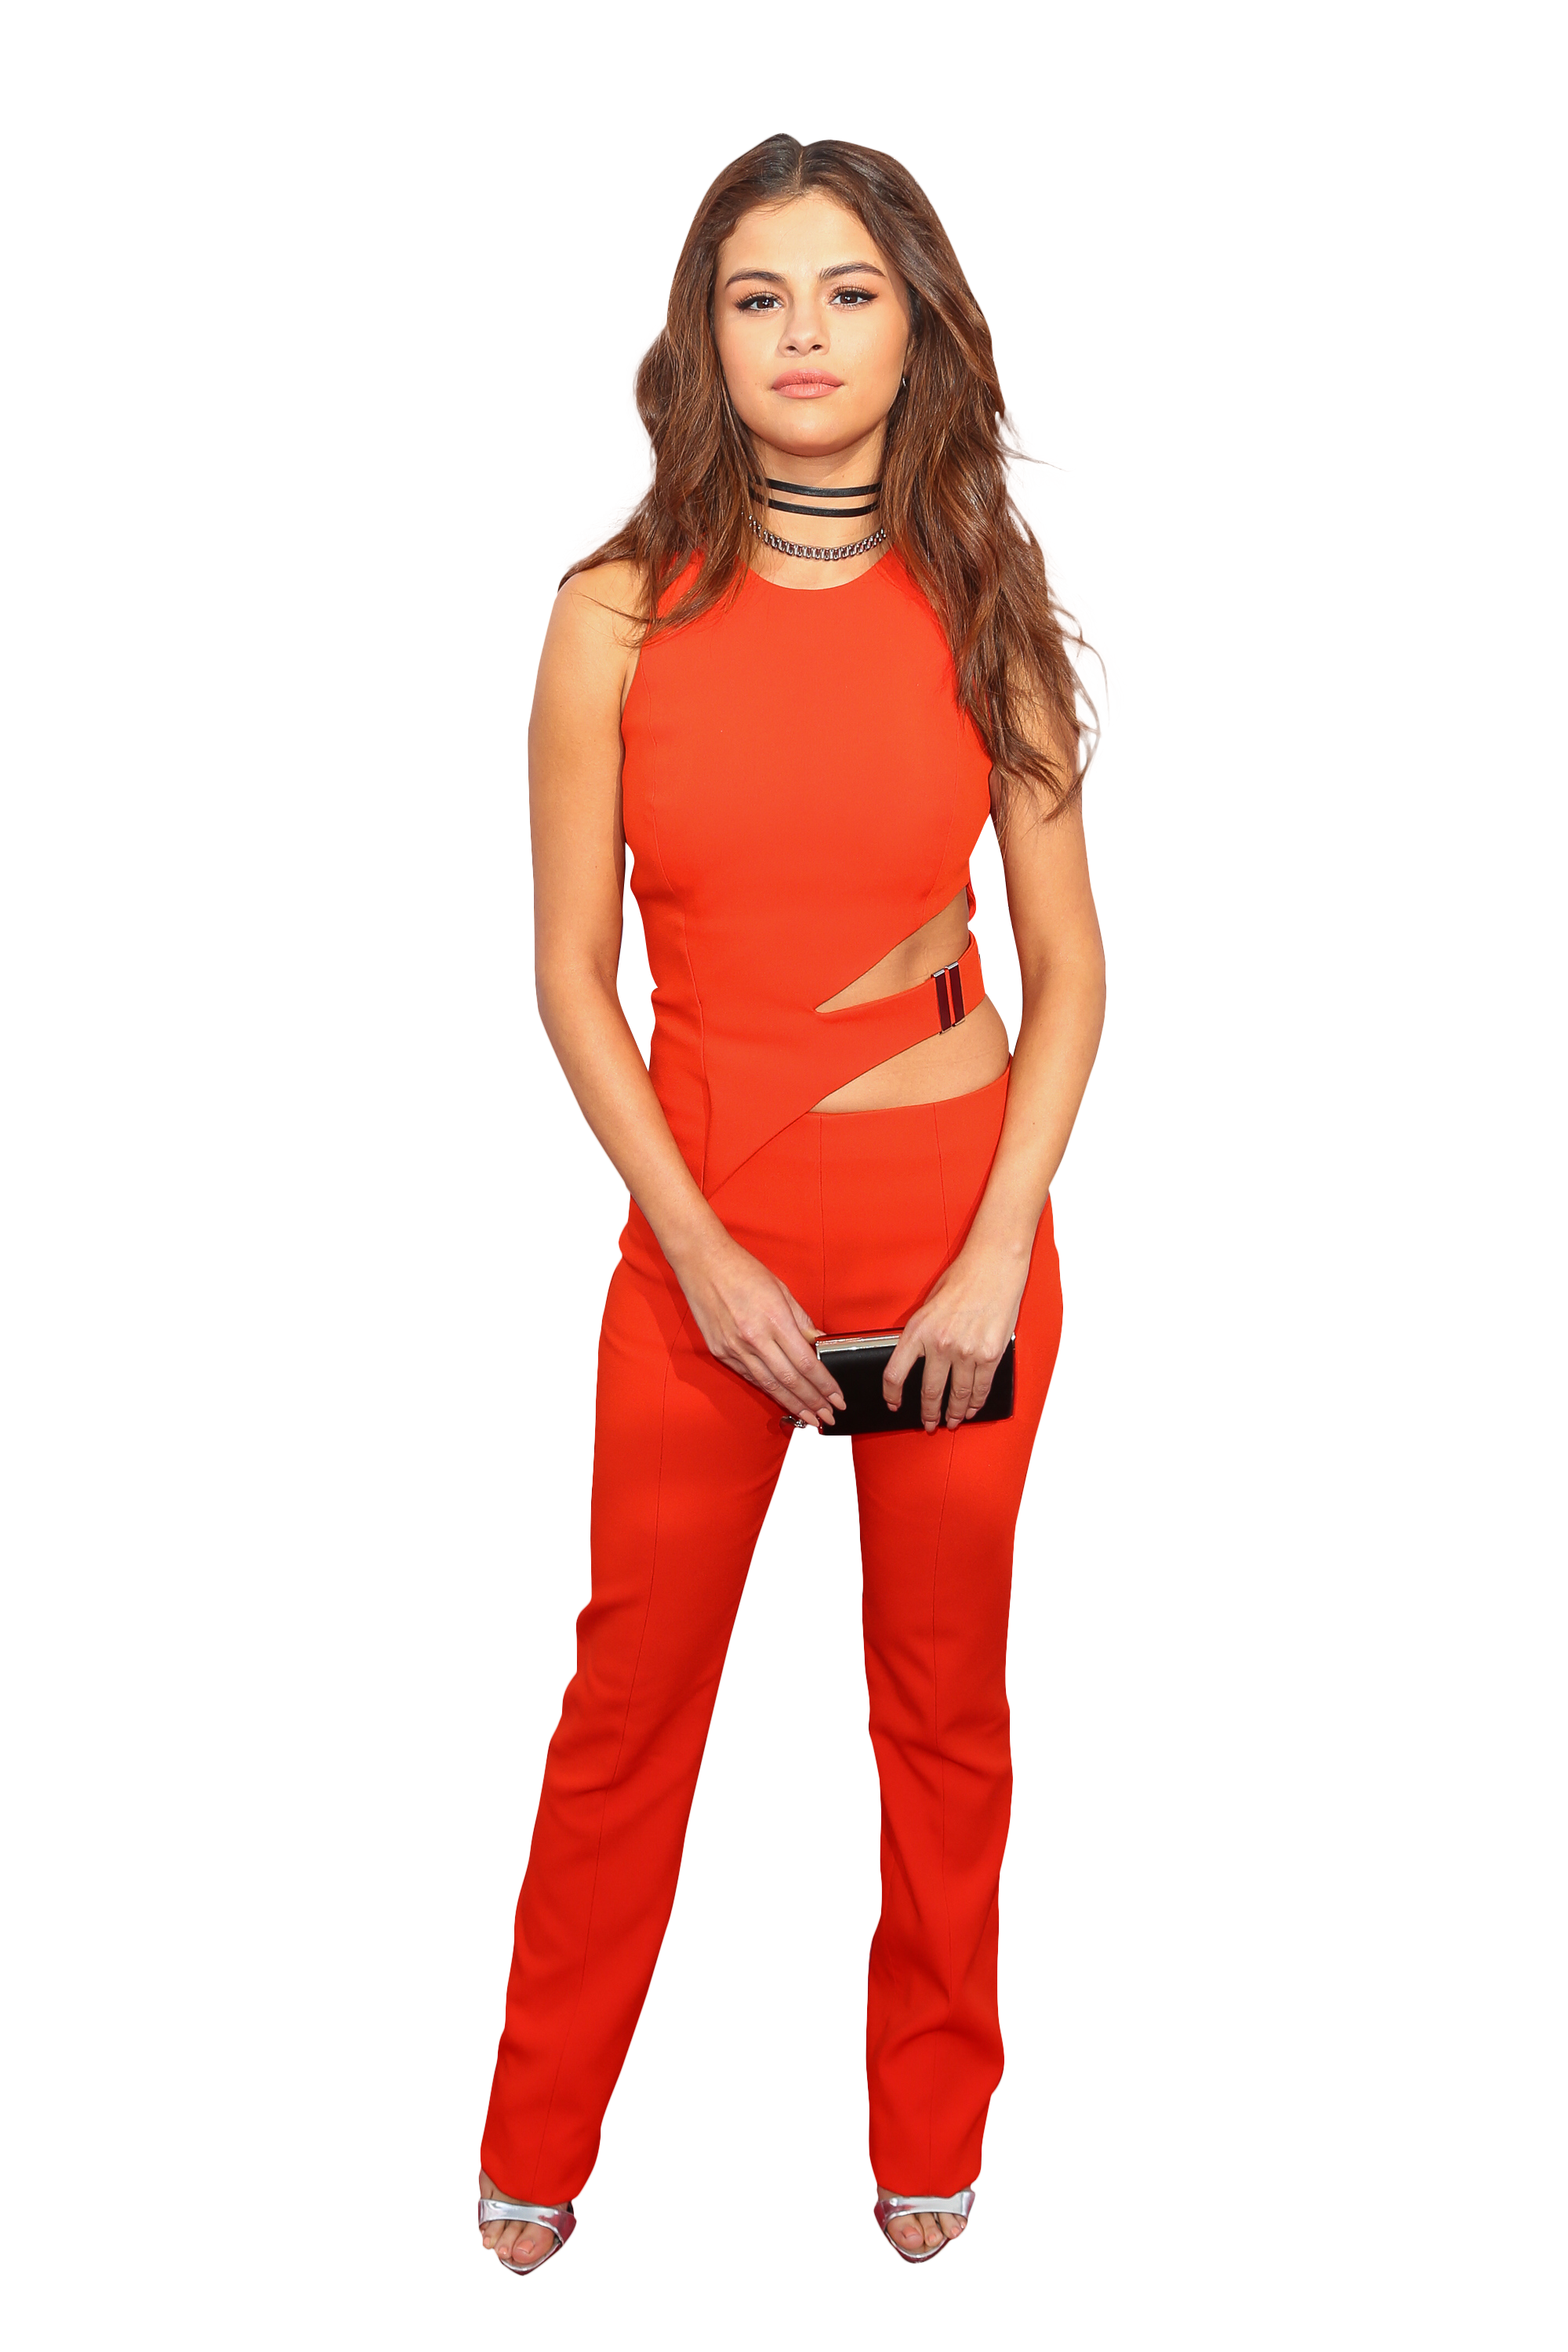 Selena Gomez in a red Dress PNG Image